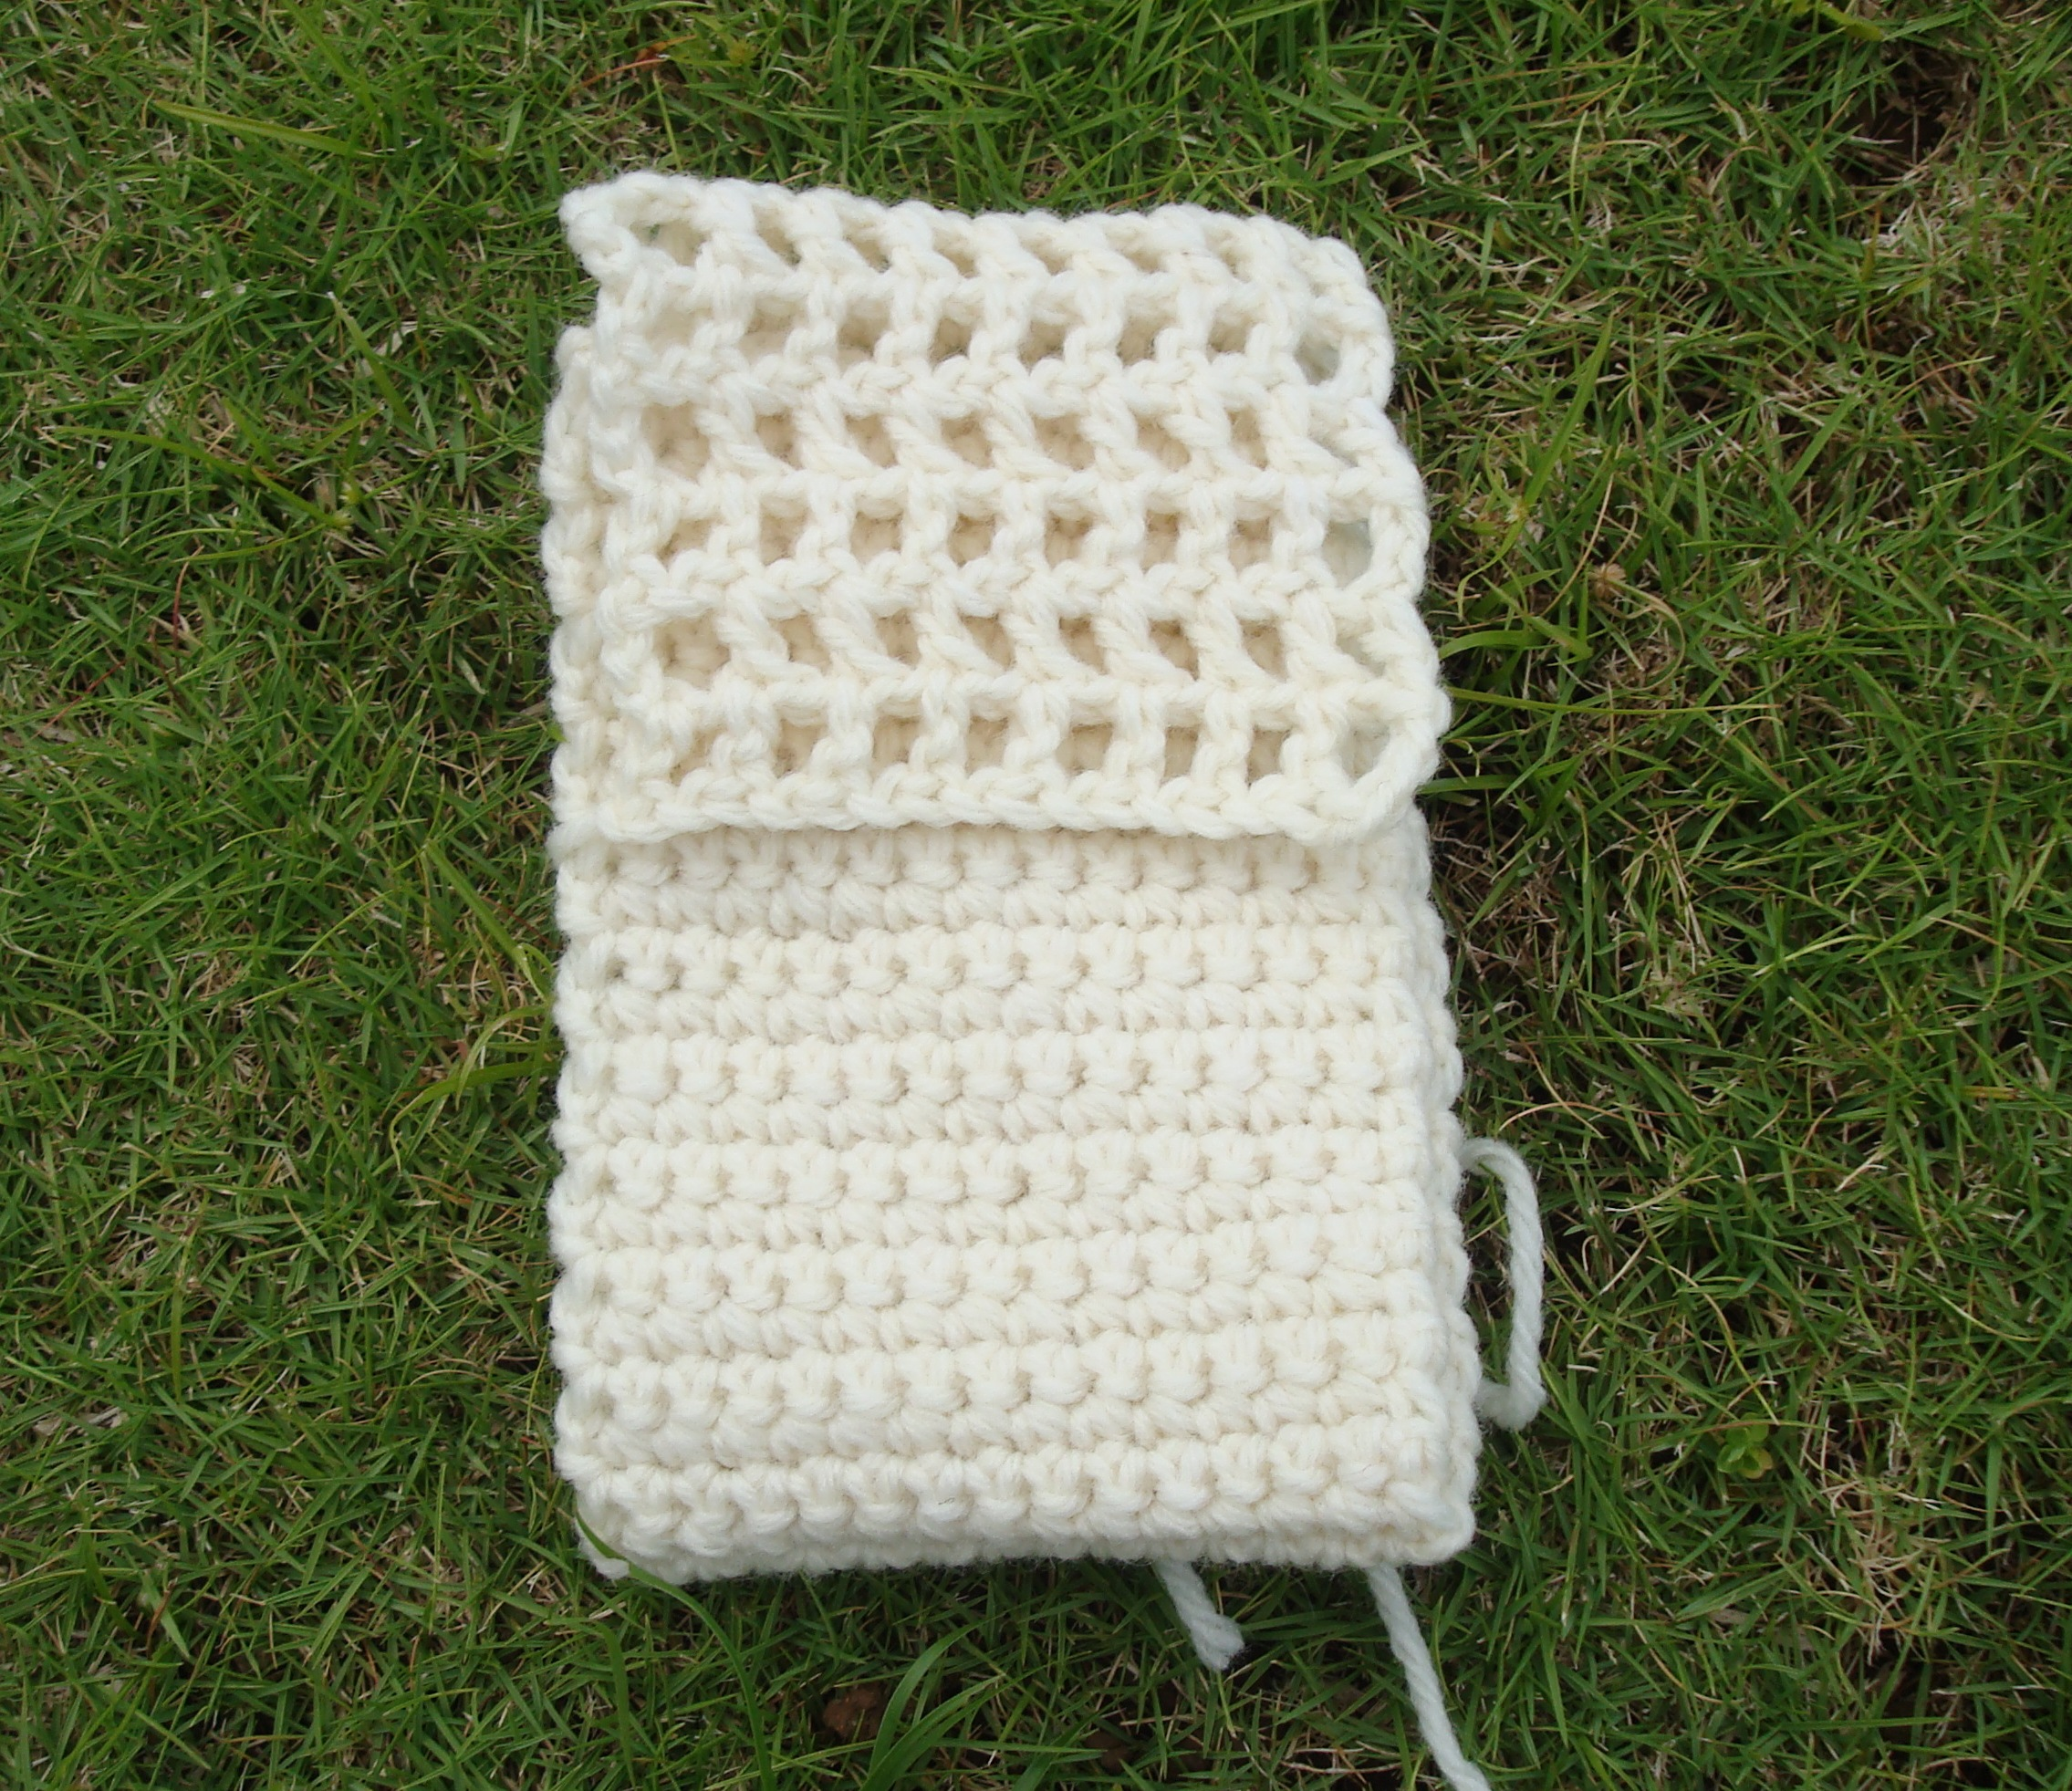 Monochromatic Freeform Crochet Purse – Part 2: The Purse